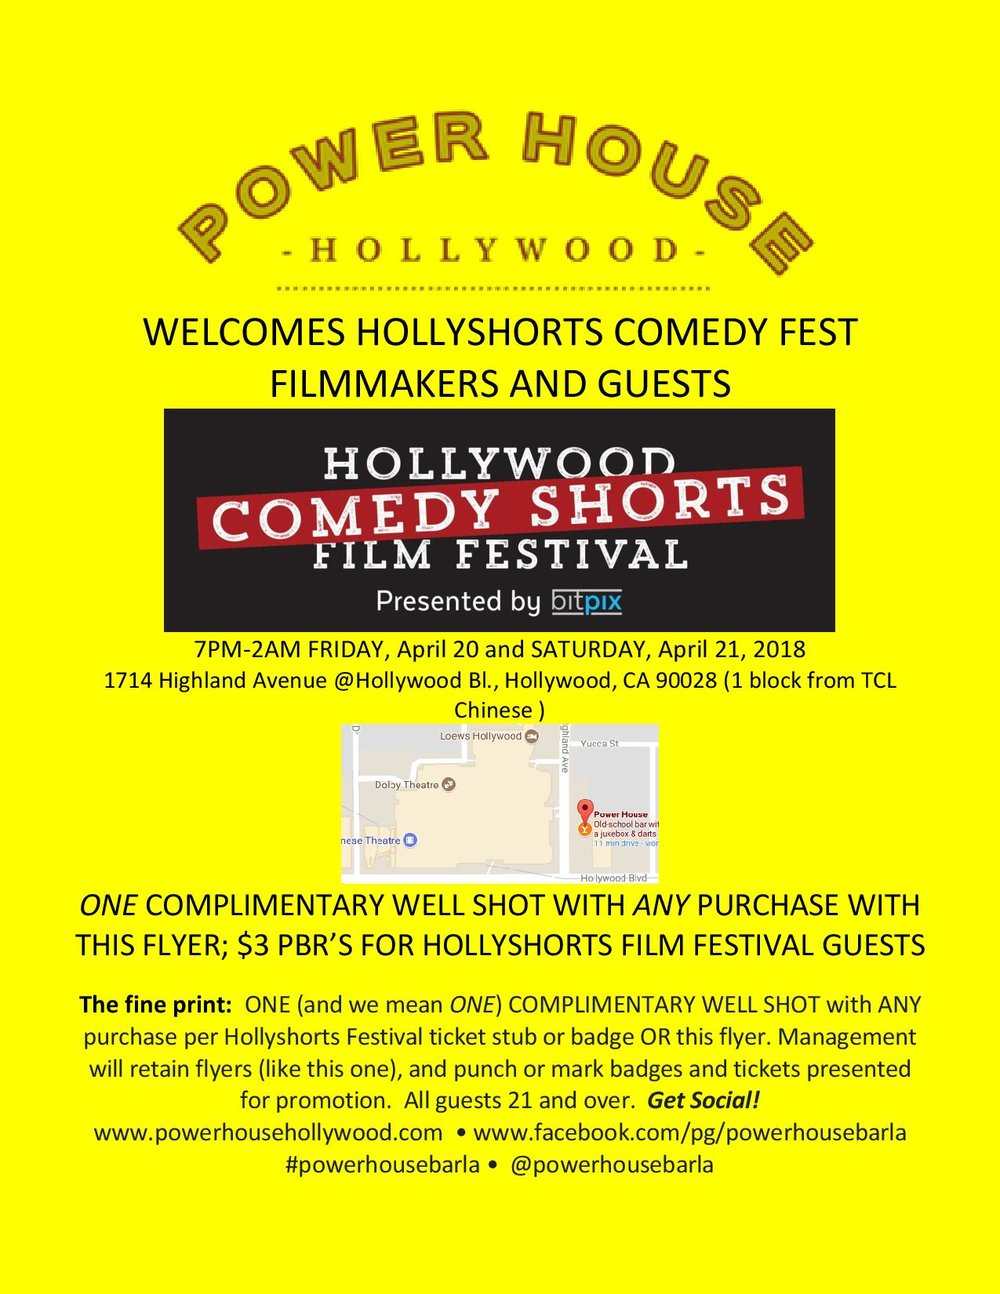 Power House Hollyshorts Comedy   invite 04202118-page-001.jpg